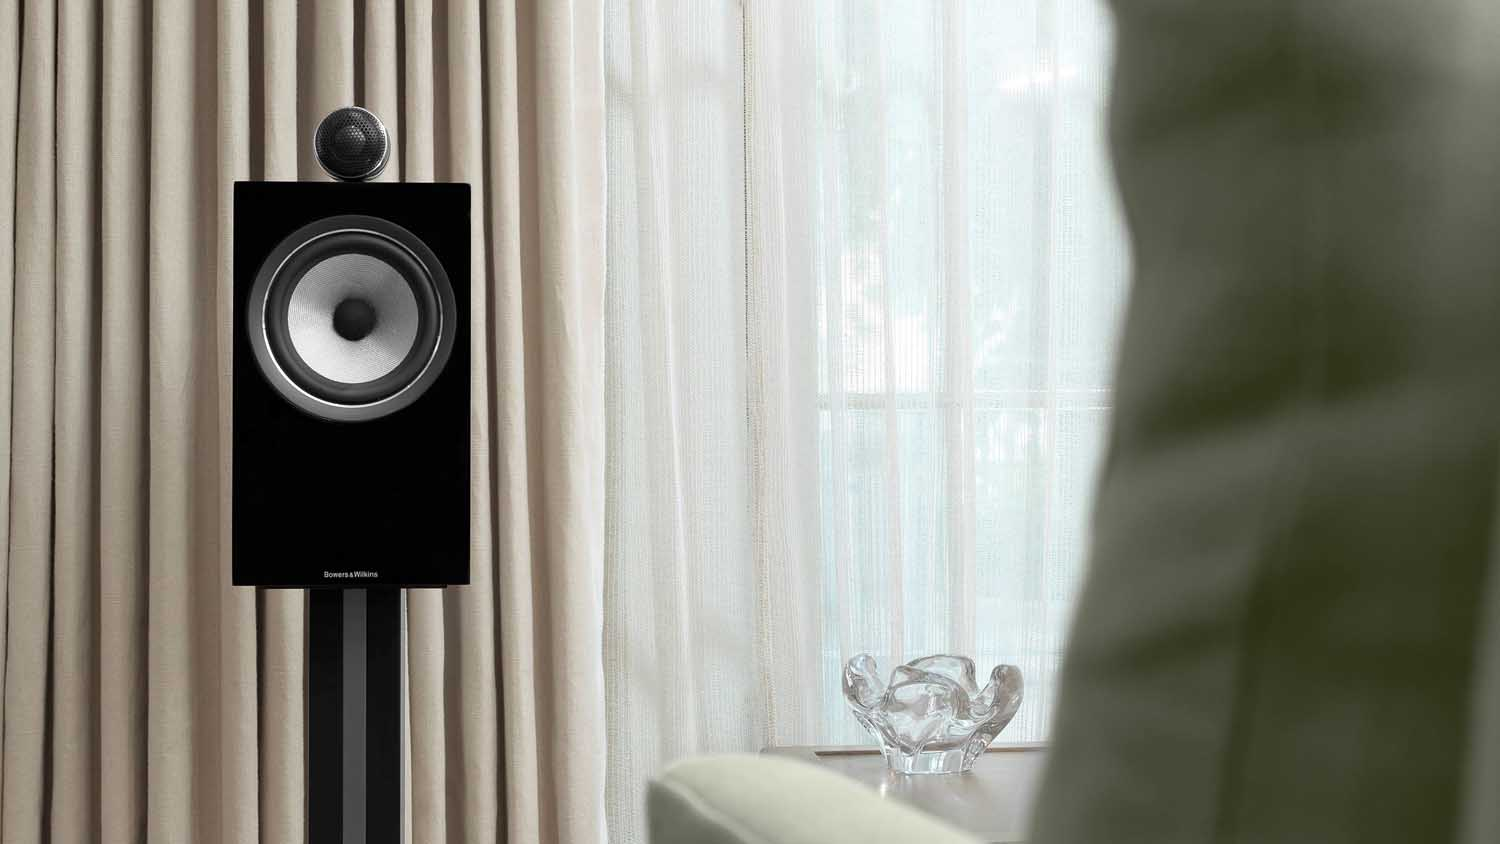 https://lamarque.fillion.ca/wp-content/uploads/2019/04/4-1-d-705-s2-700-series-2-speakers-black-on-stand-1.jpg